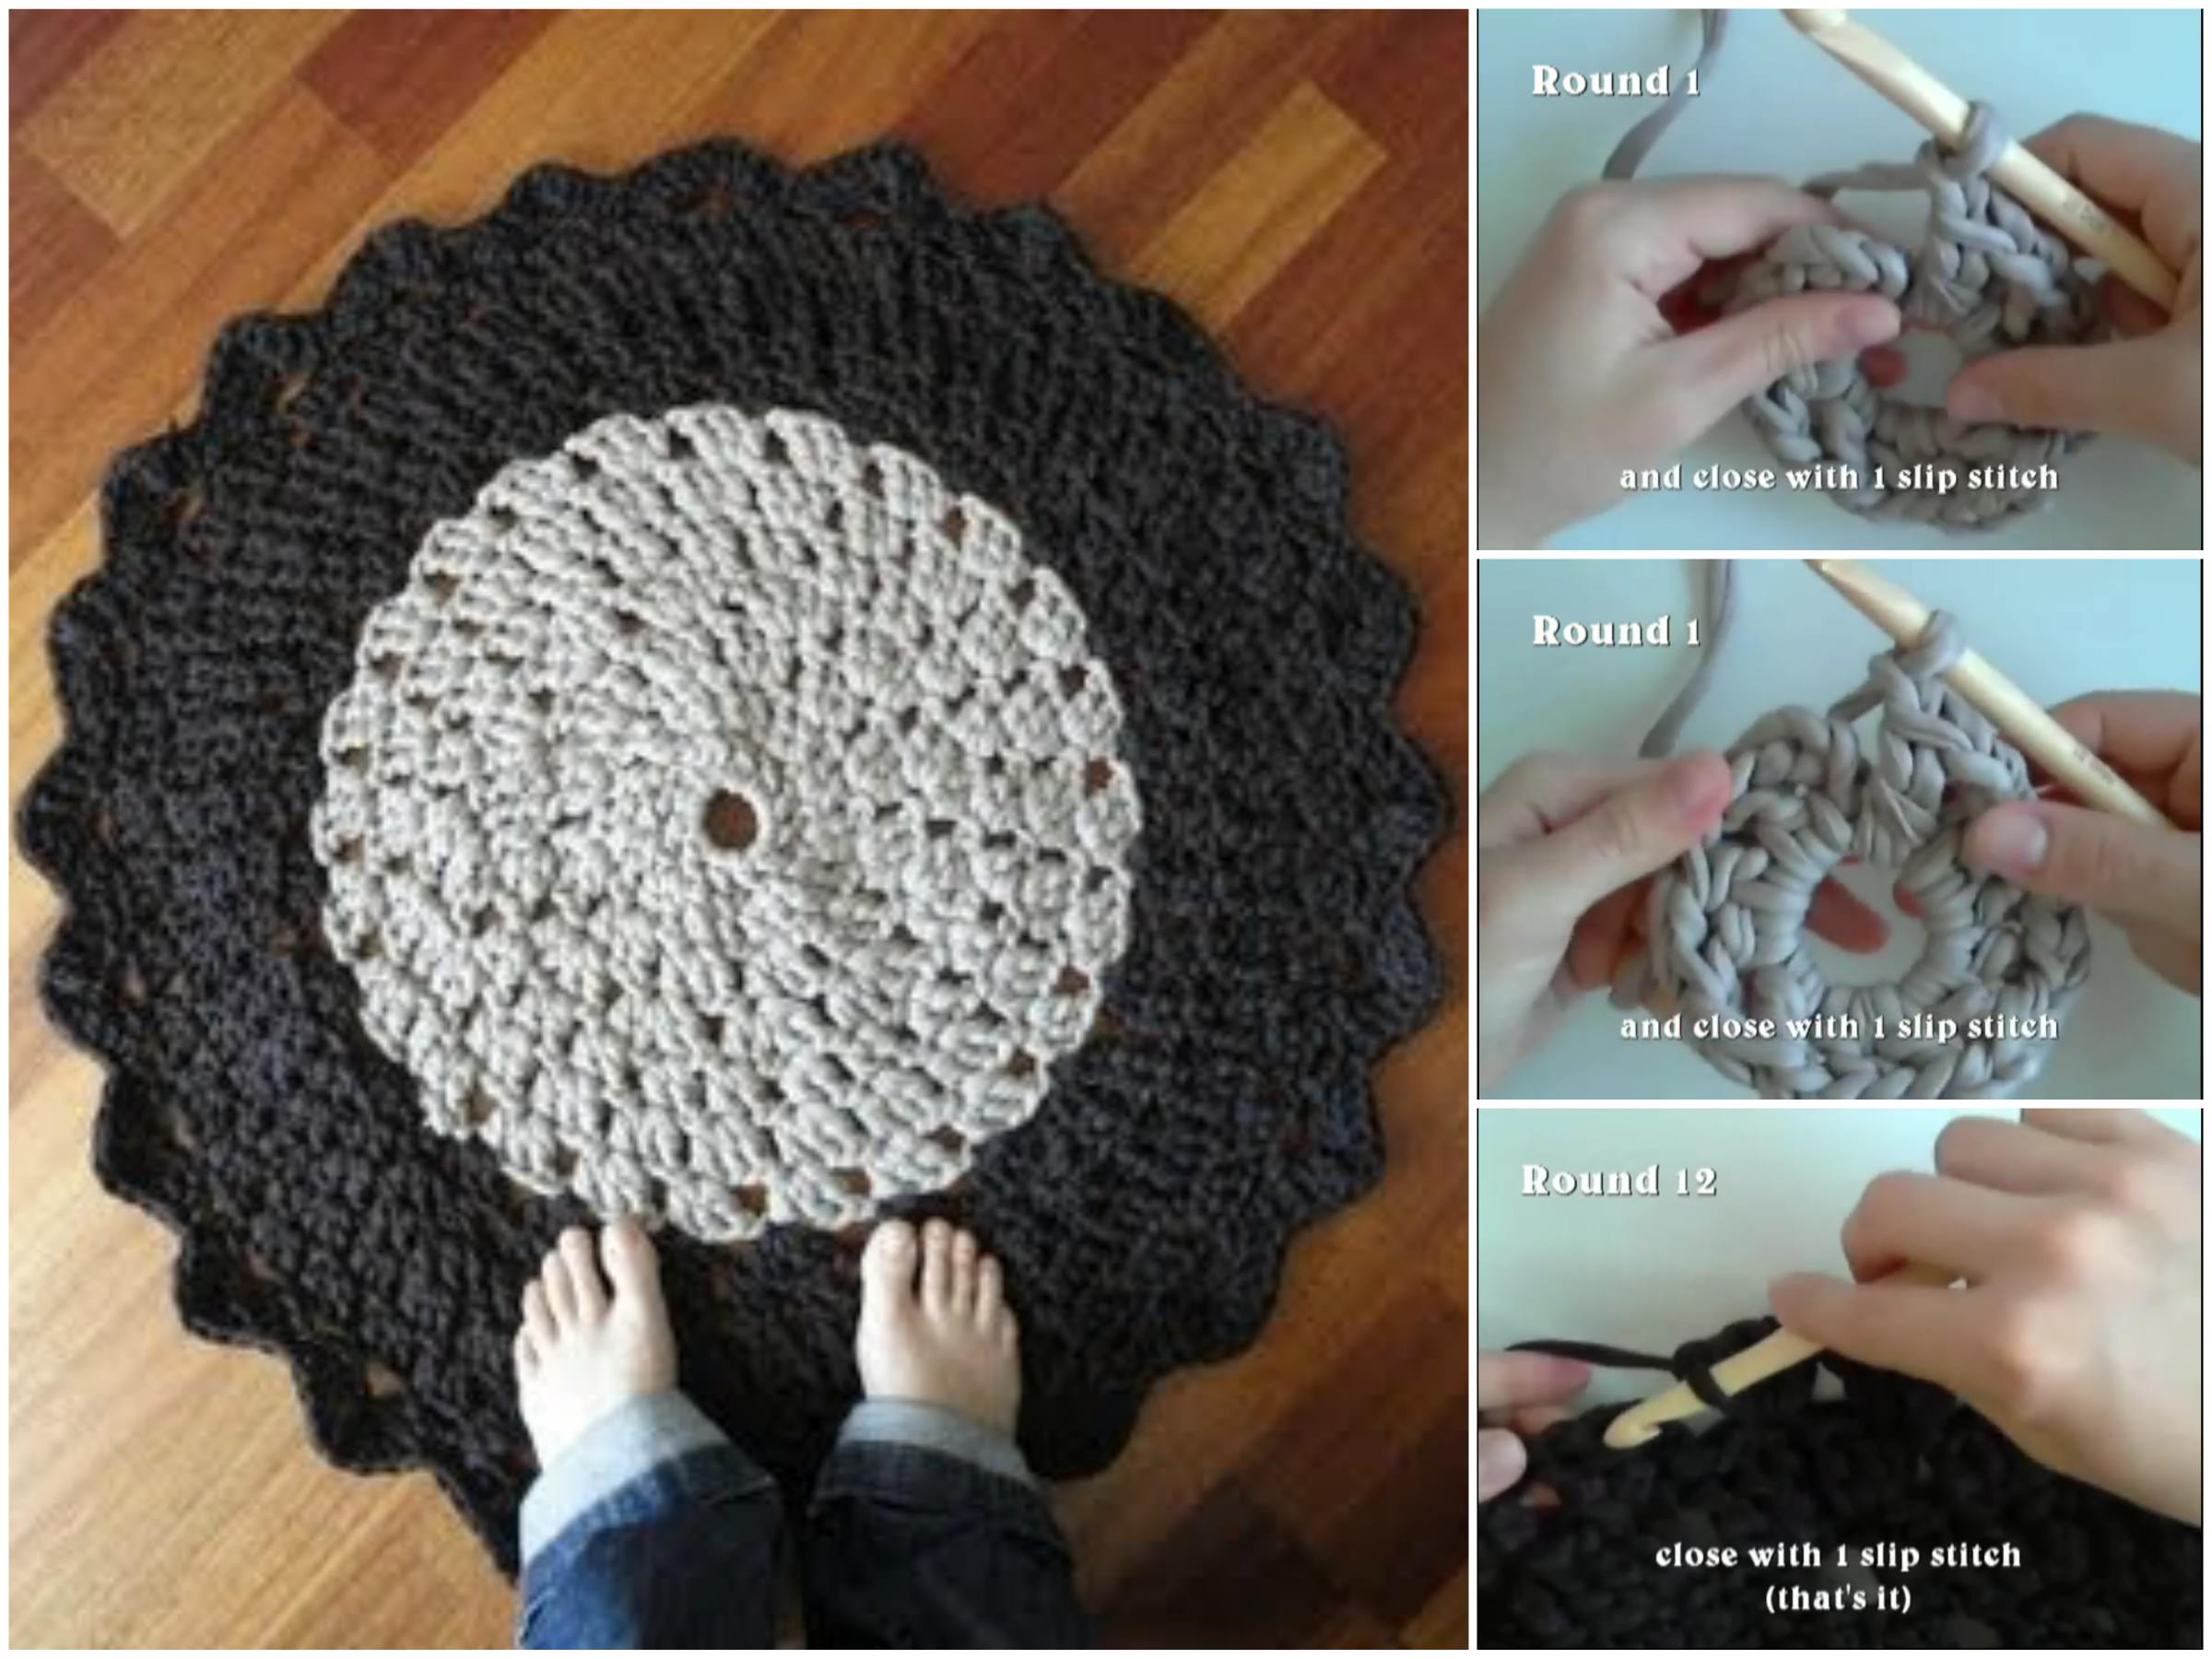 Rounded Crochet Rug Pattern Tutorial